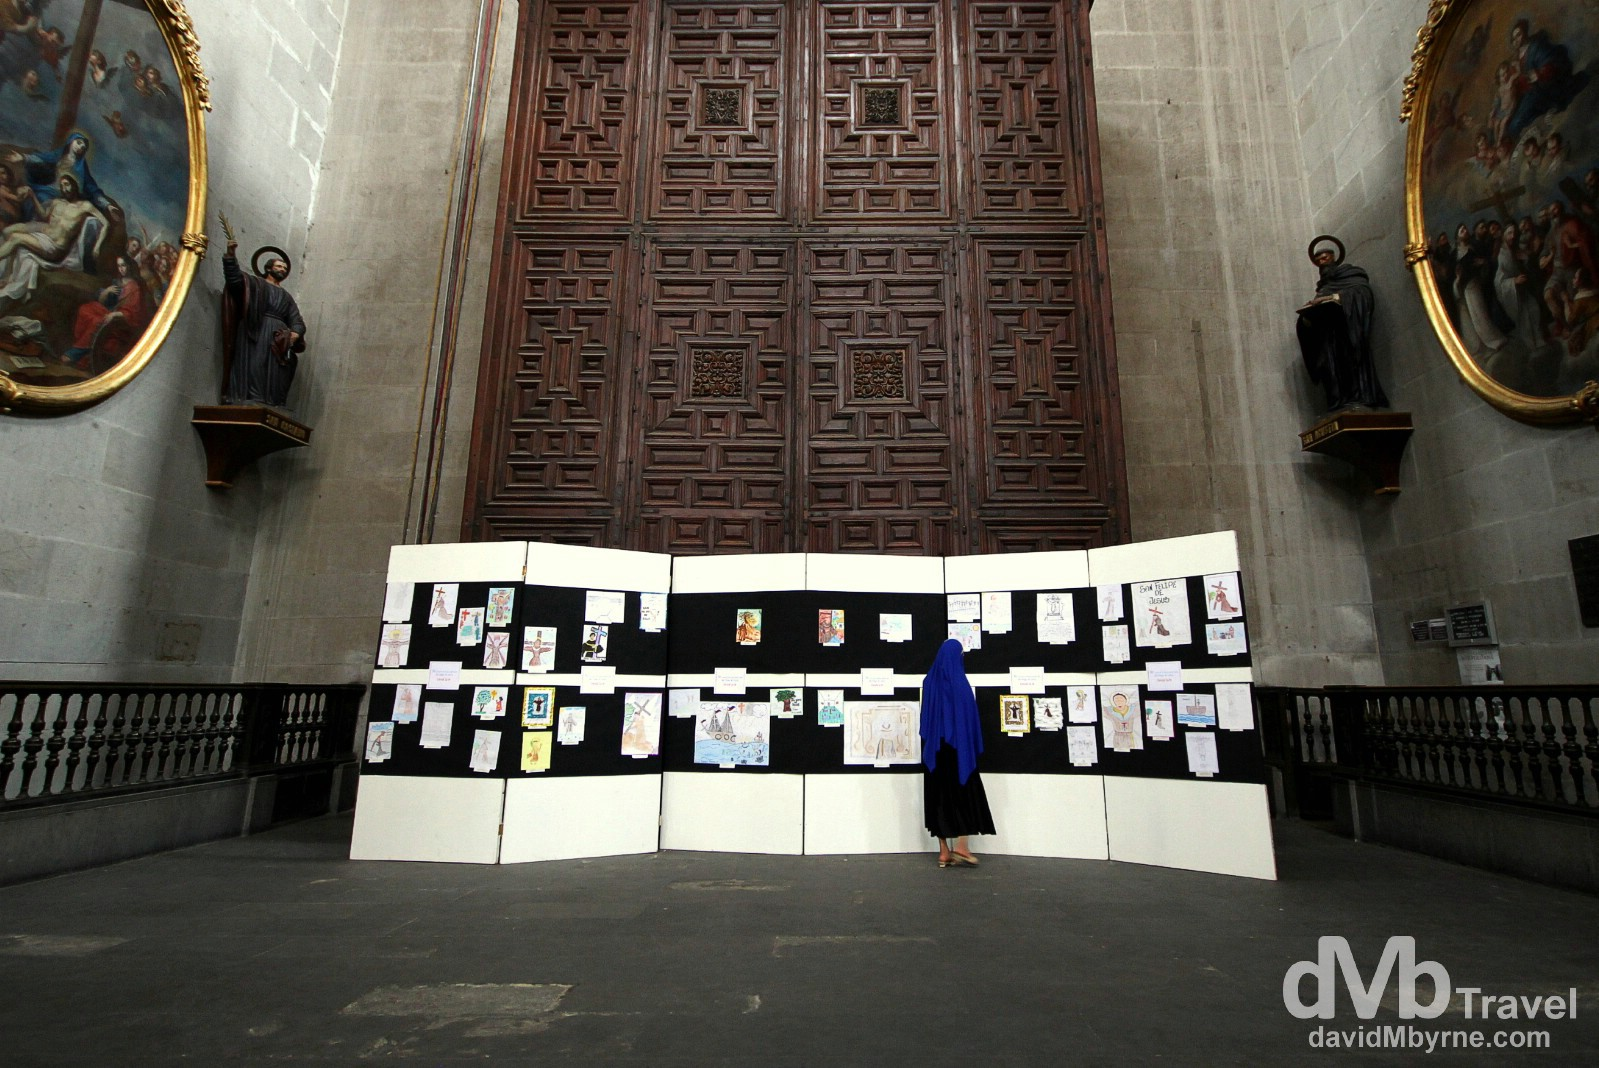 A nun looks at a display in a section of the Catedral Metropolitana, Mexico City. April 26th 2013.